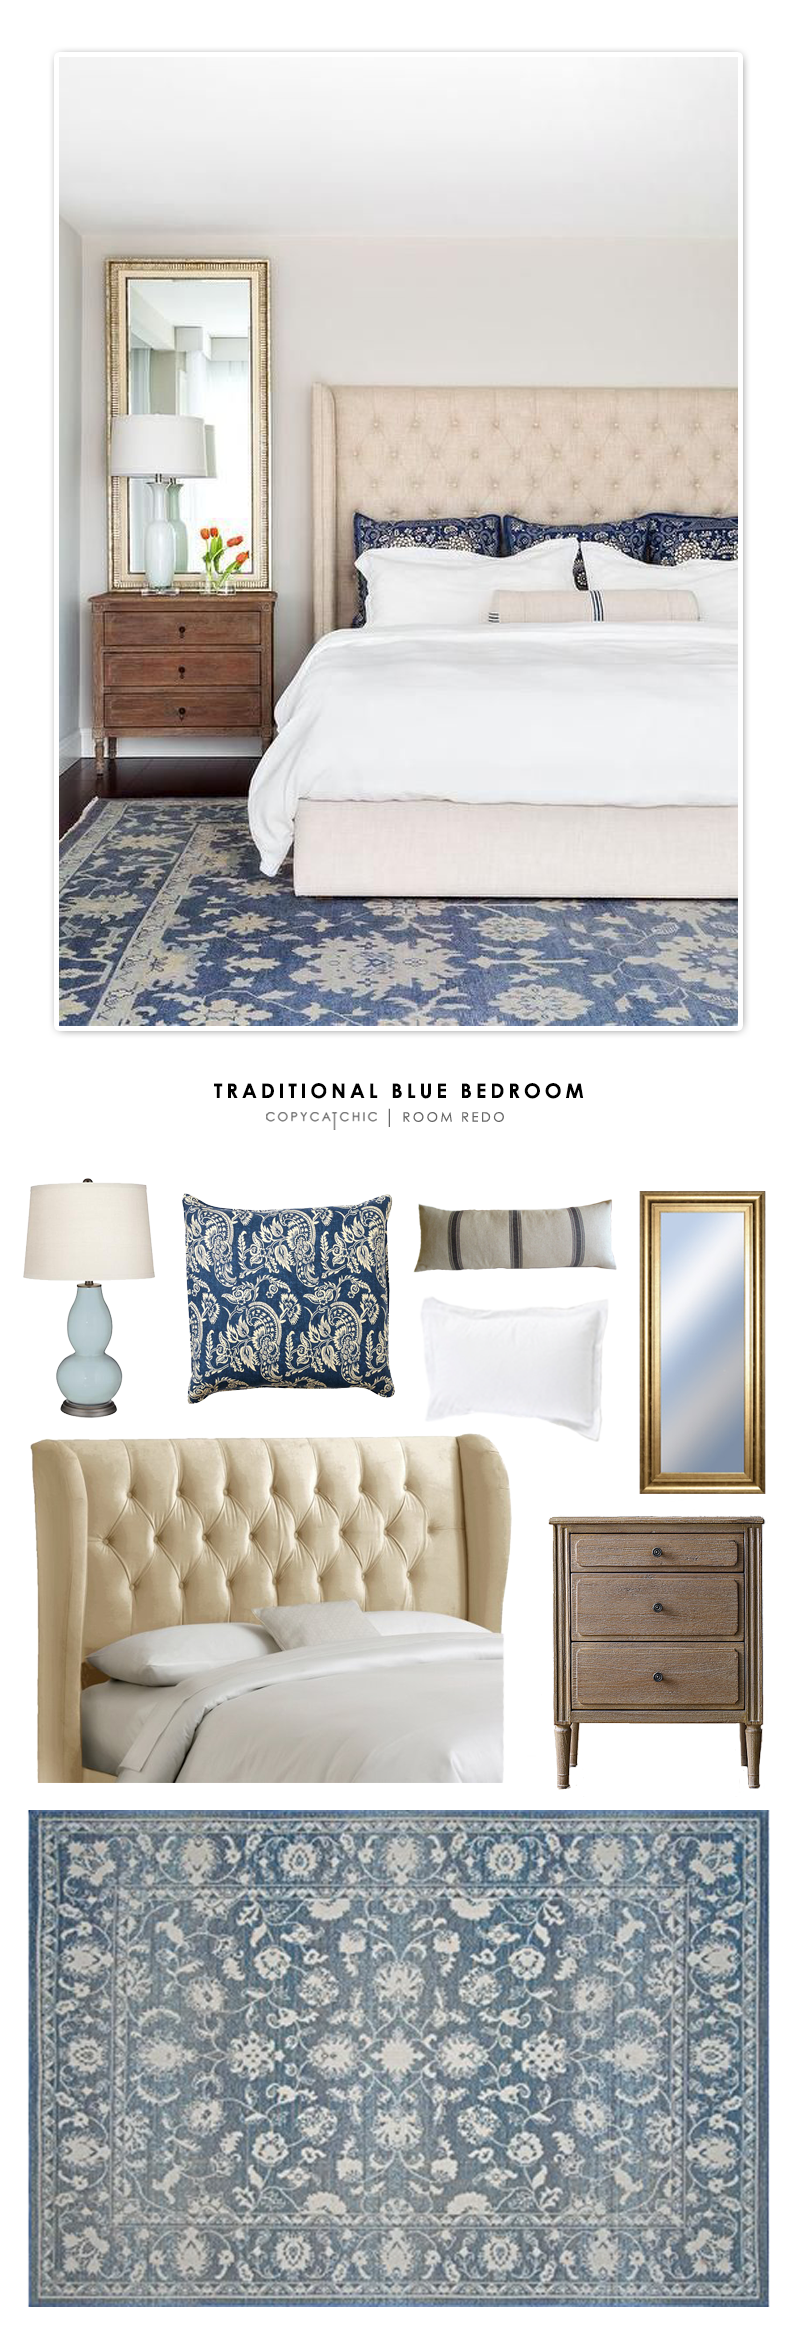 A Cozy Traditional Blue Bedroom Featured On HGTV And Designed By Chango Co Recreated For